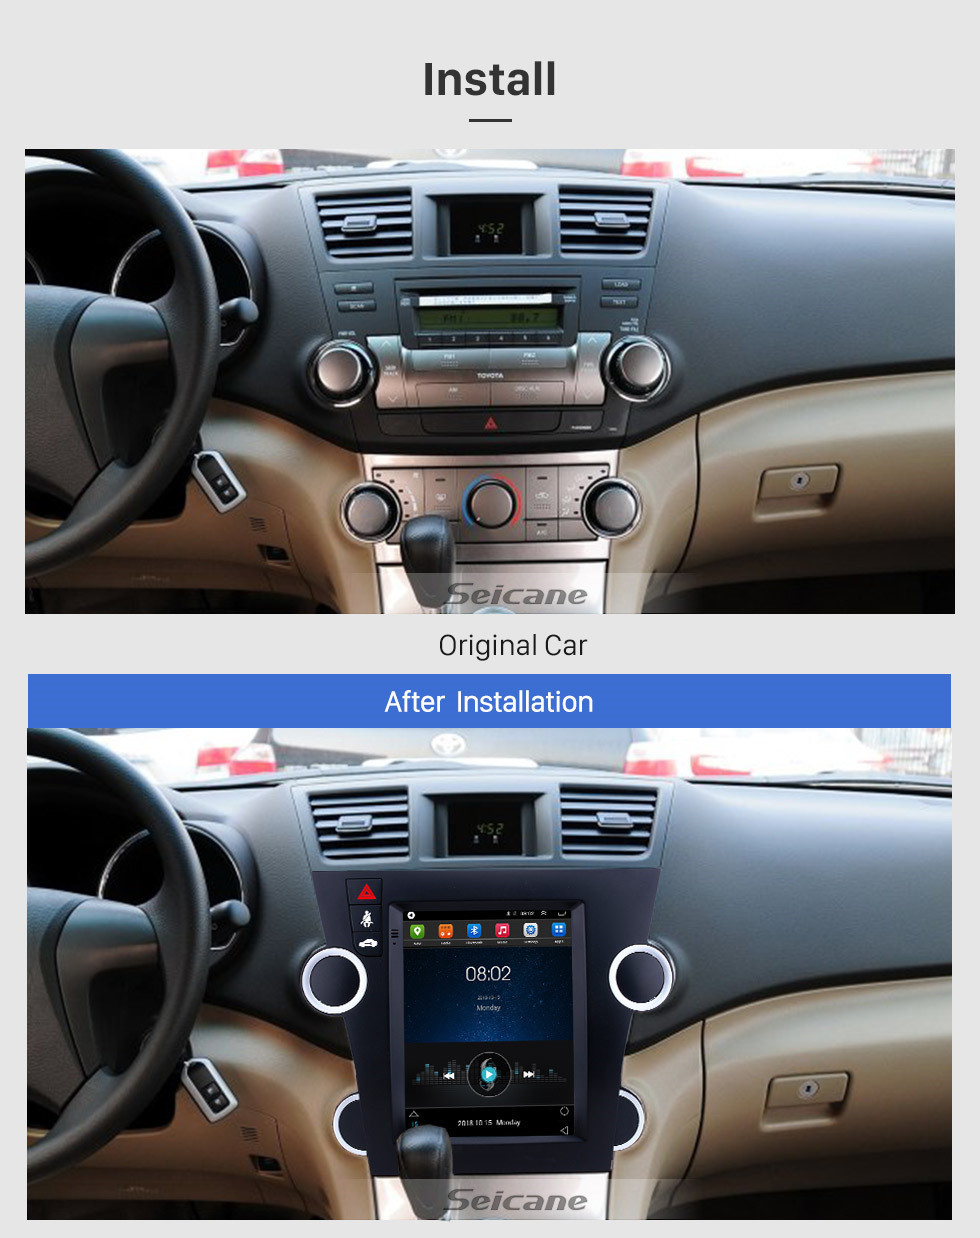 Seicane Android 9.1 9.7 inch GPS Navigation Radio for 2009-2014 Toyota Highlander with HD Touchscreen Bluetooth WIFI AUX support Carplay Mirror Link OBD2